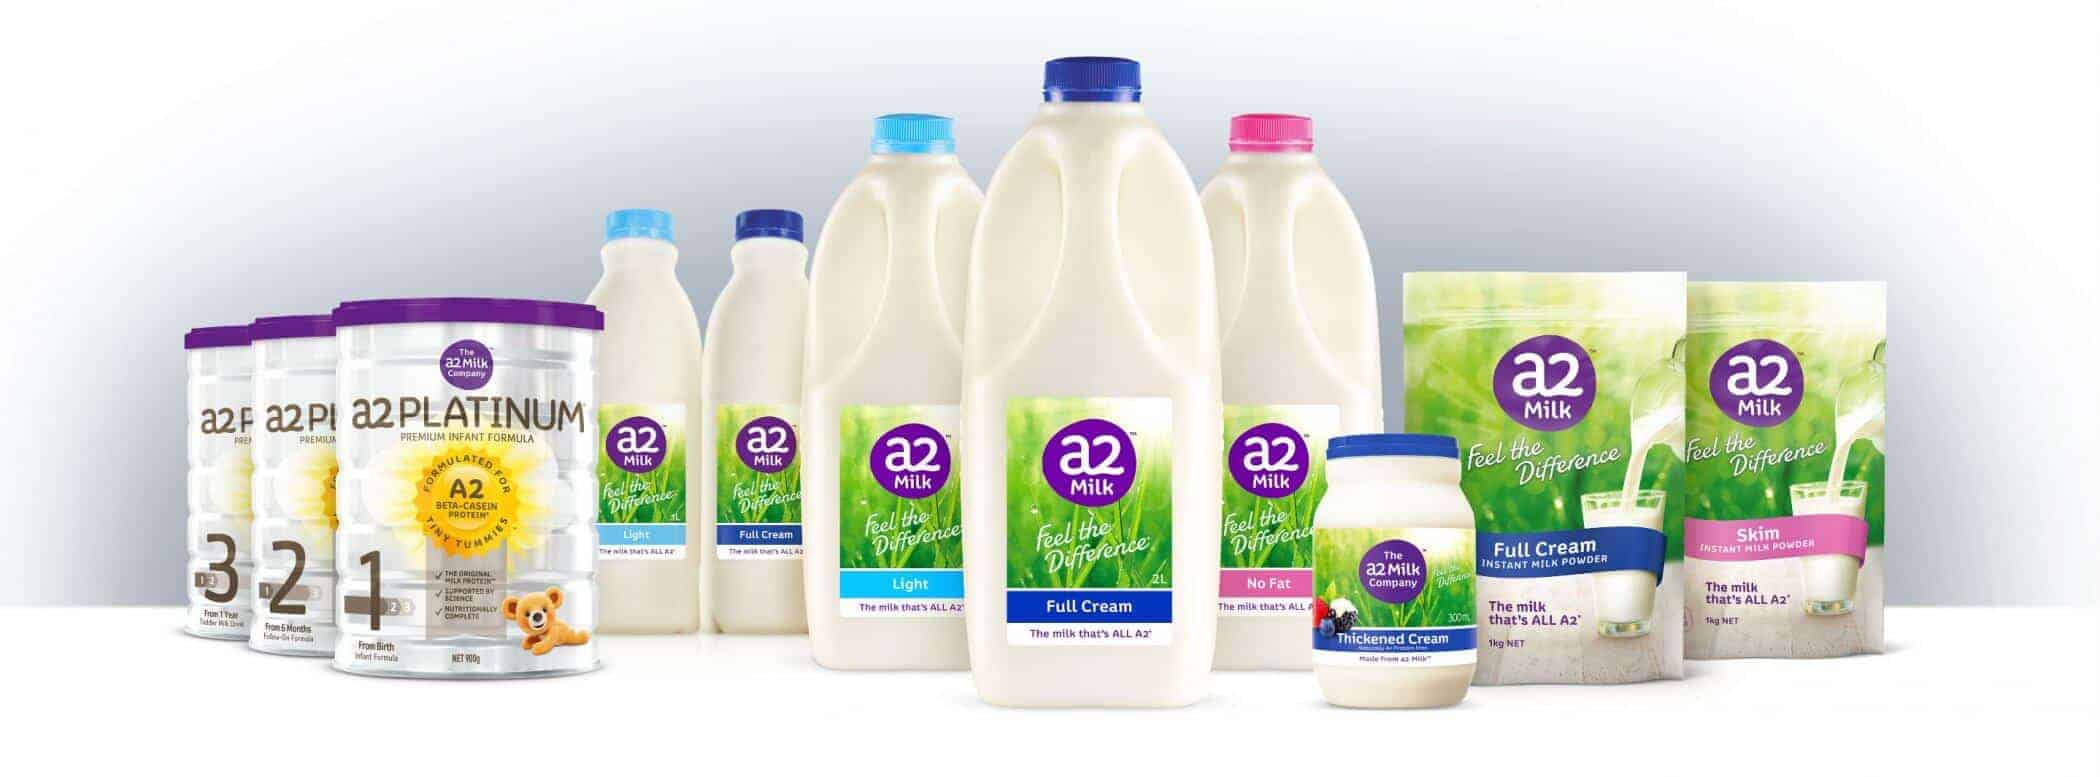 How To Invest In Shares - A2 Milk (ASX A2M)